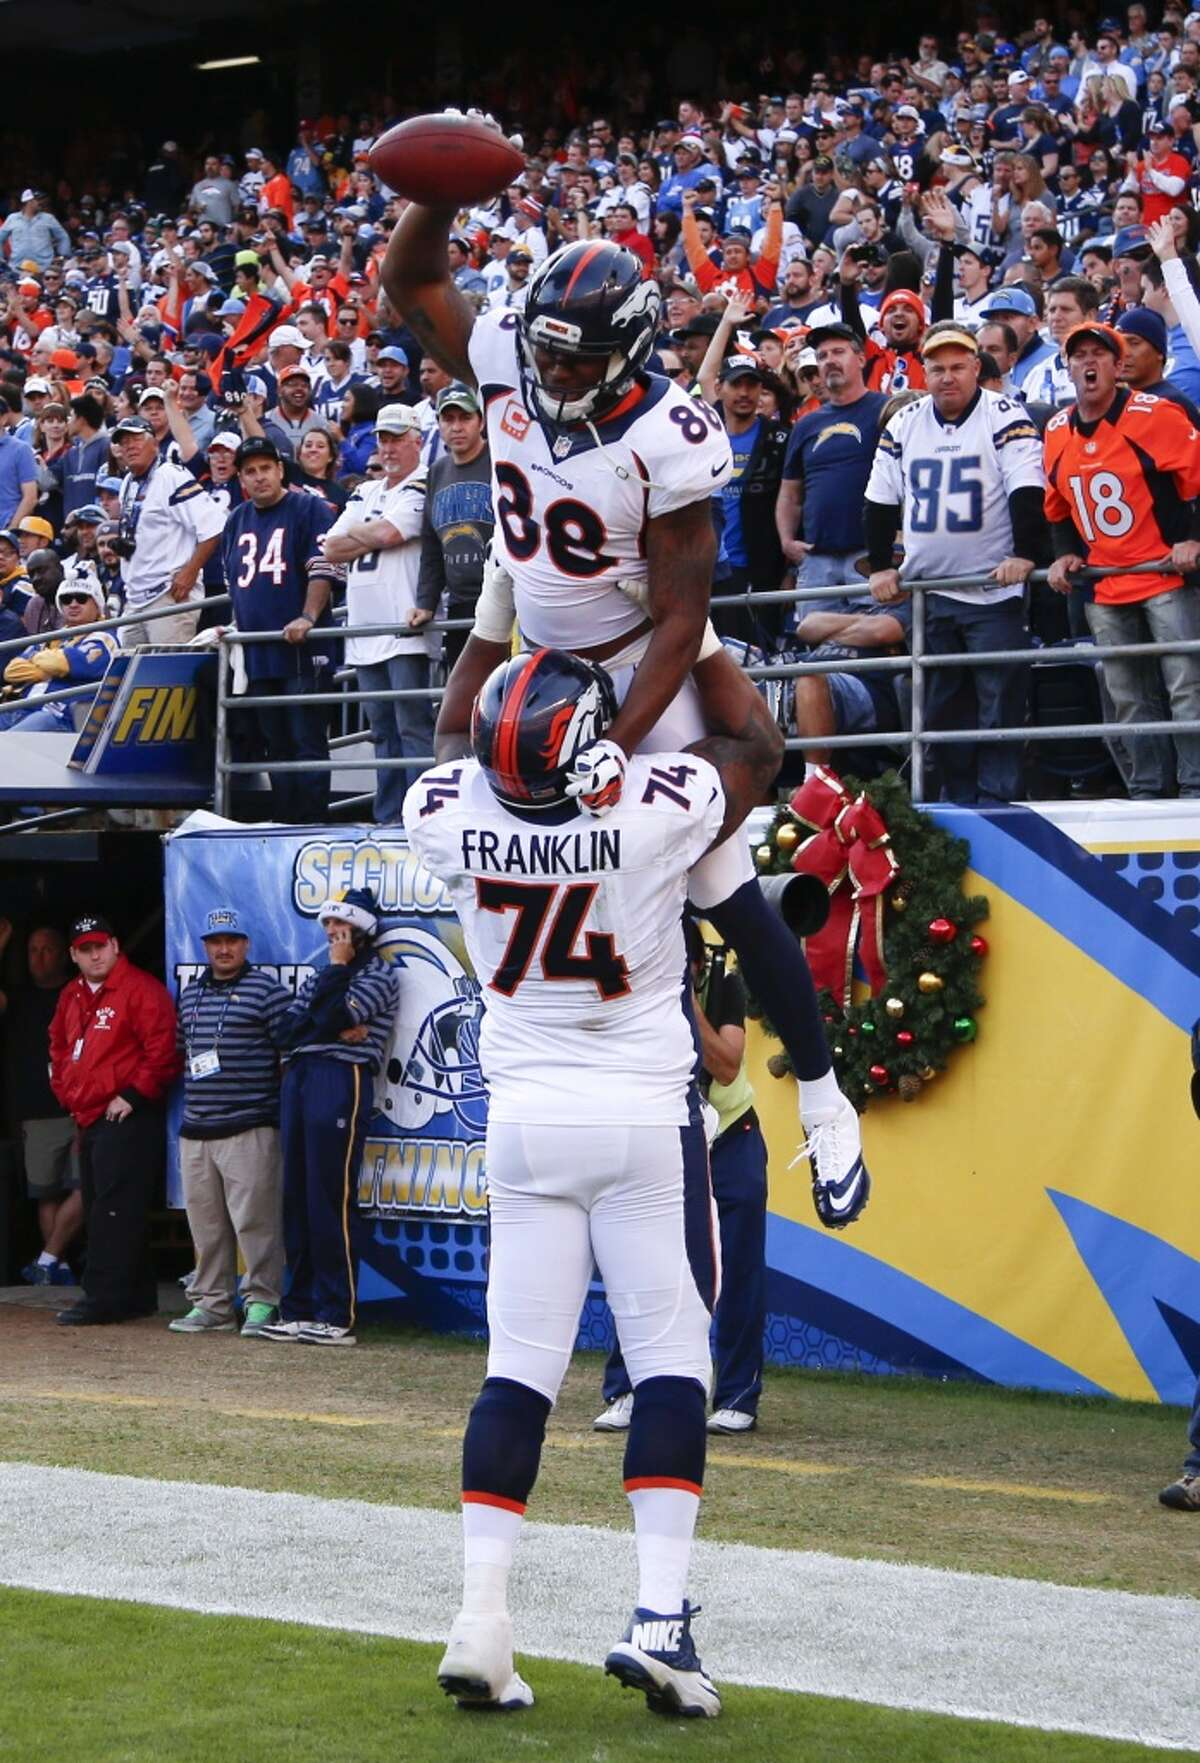 #2. Denver Broncos (11-3) Last week: #3 The Broncos' 22-10 victory at San Diego is another indication they're no longer piling up points. They've scored 39, 29, 24 and 22 in a four-game winning streak.